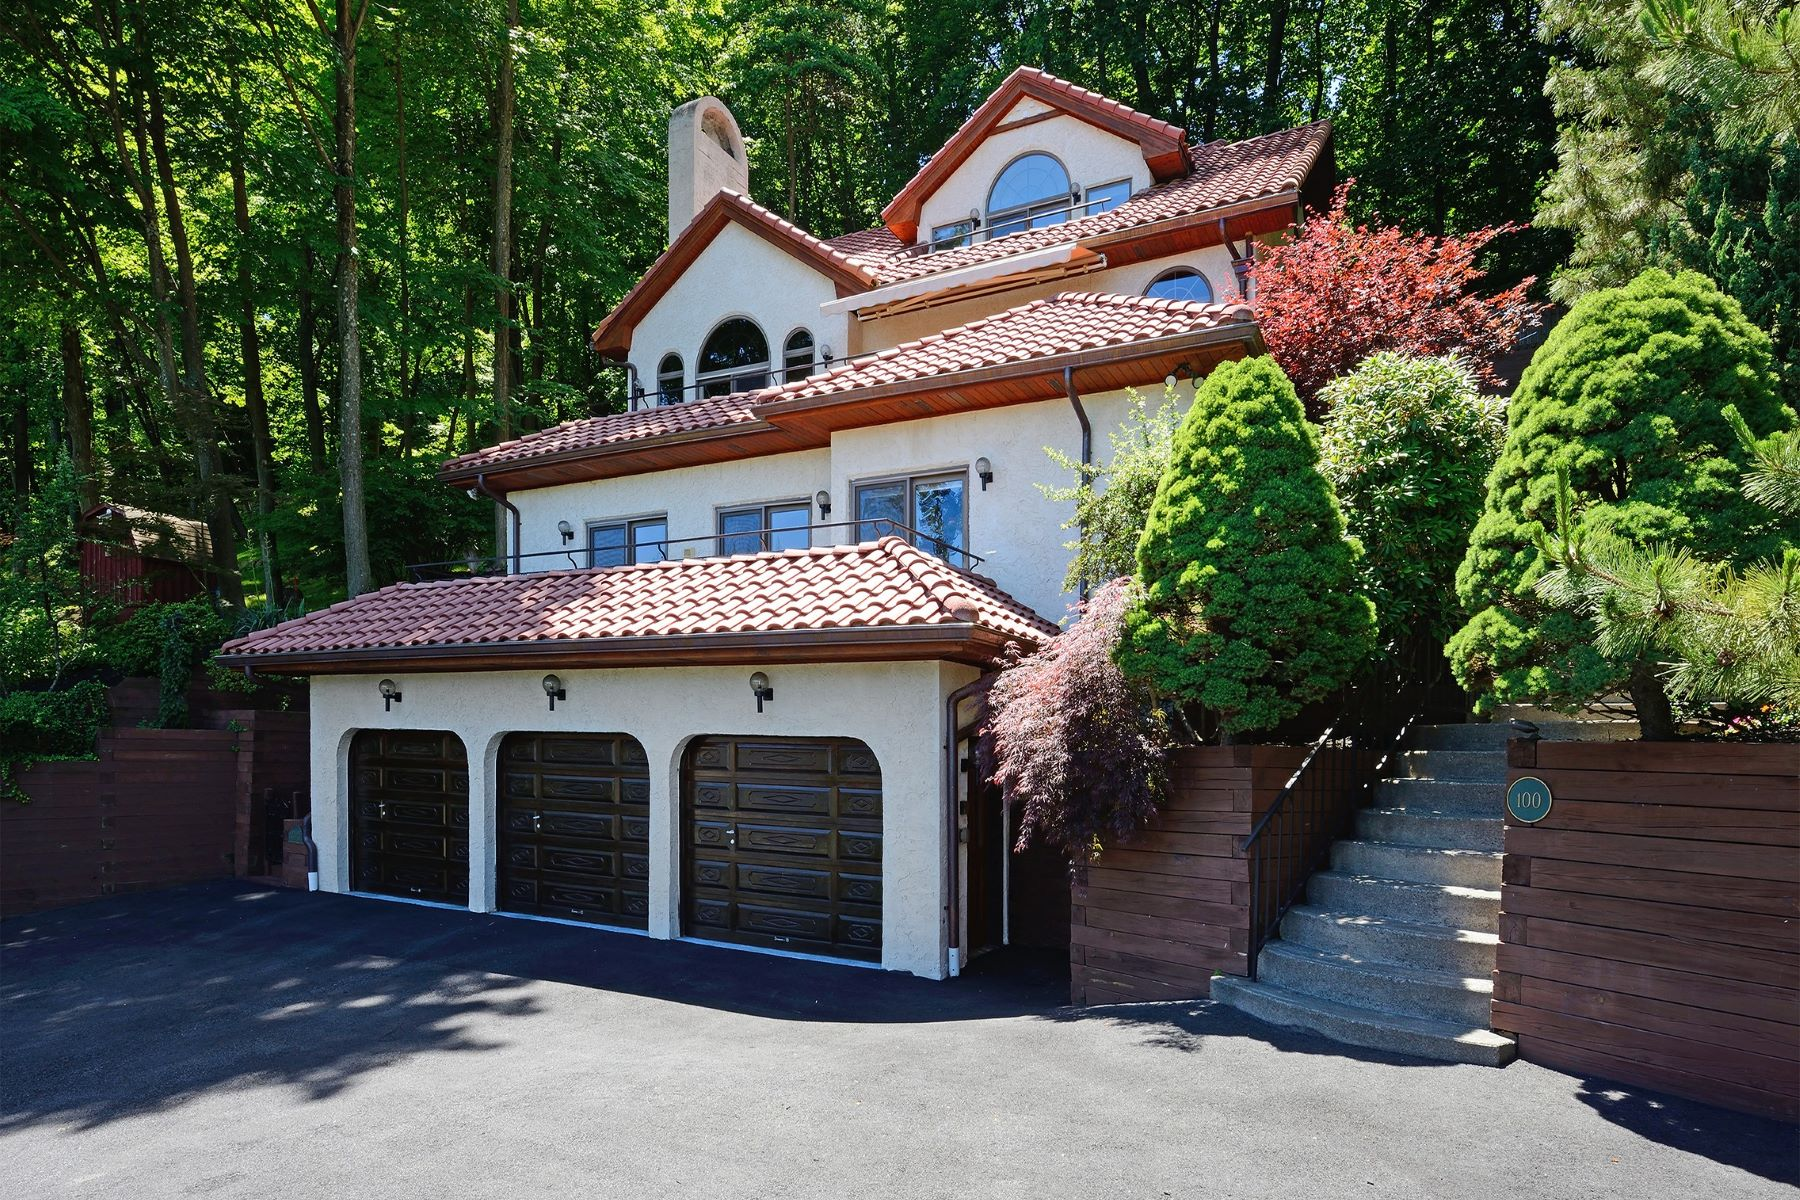 Single Family Home for Sale at Striking Mediterranean 100 Orchard Terrace, Piermont, New York, 10968 United States